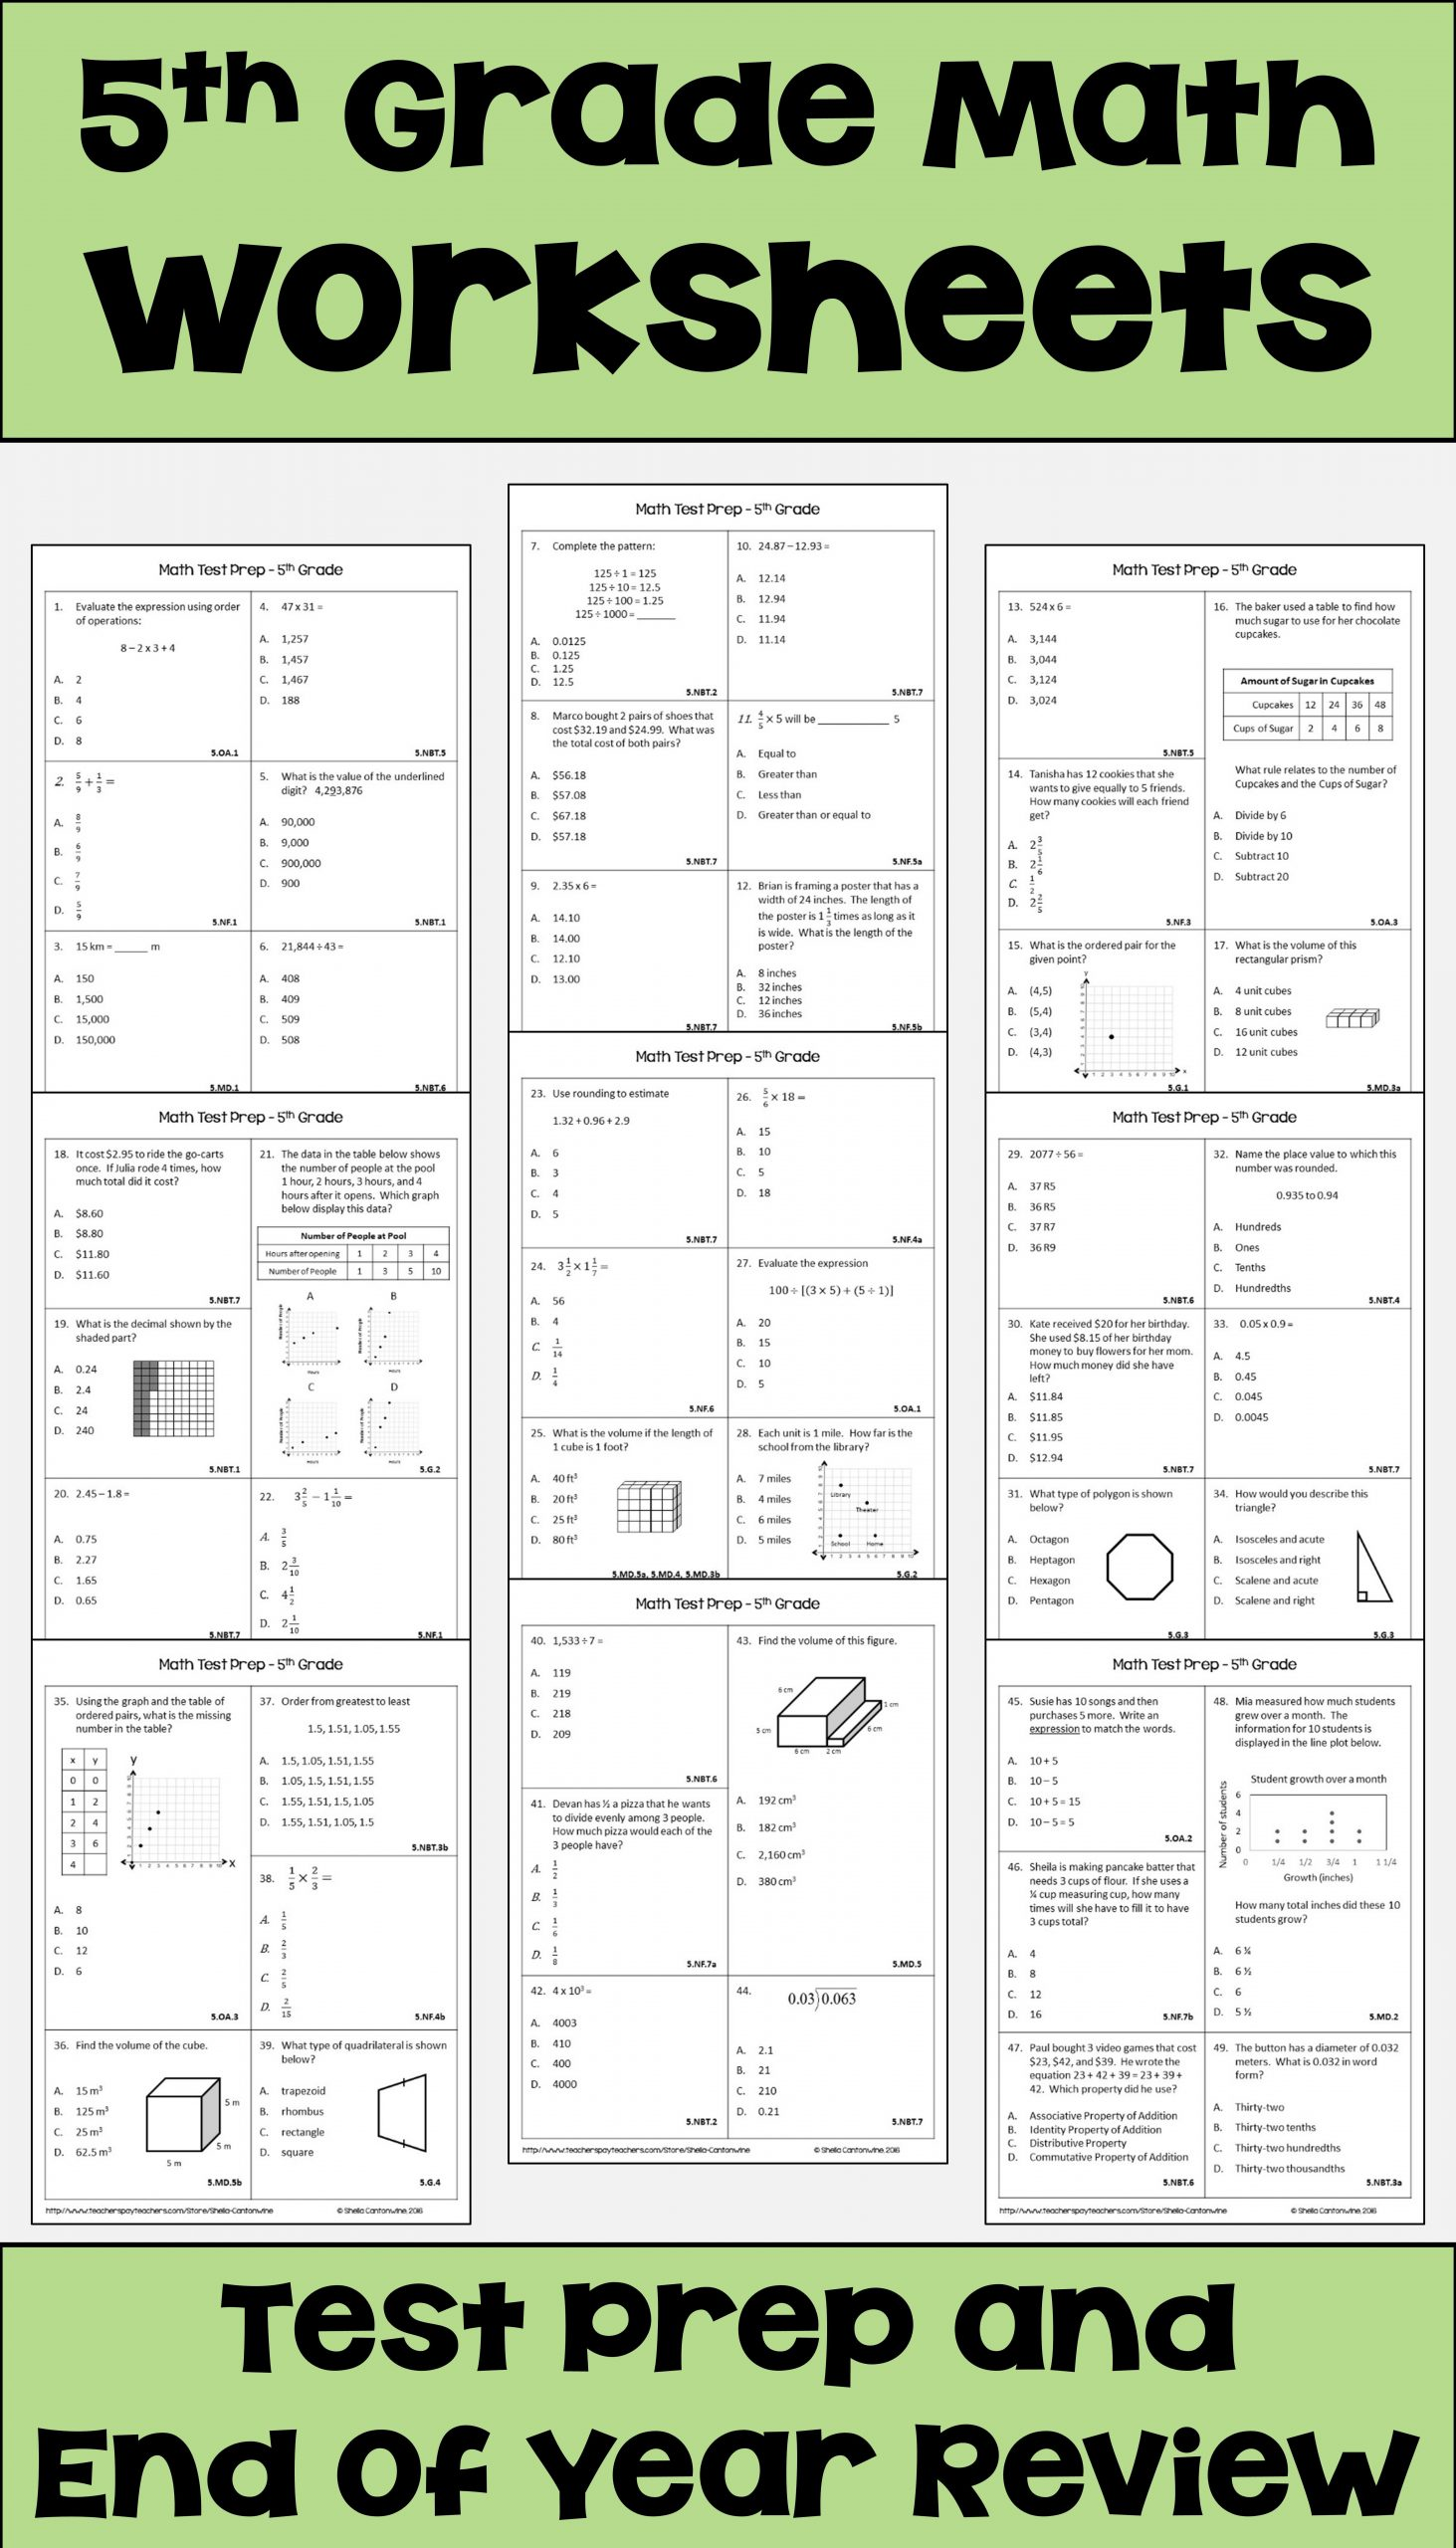 5th Grade Test Prep Worksheets Pin On 5th Grade Math Test Prep & Review